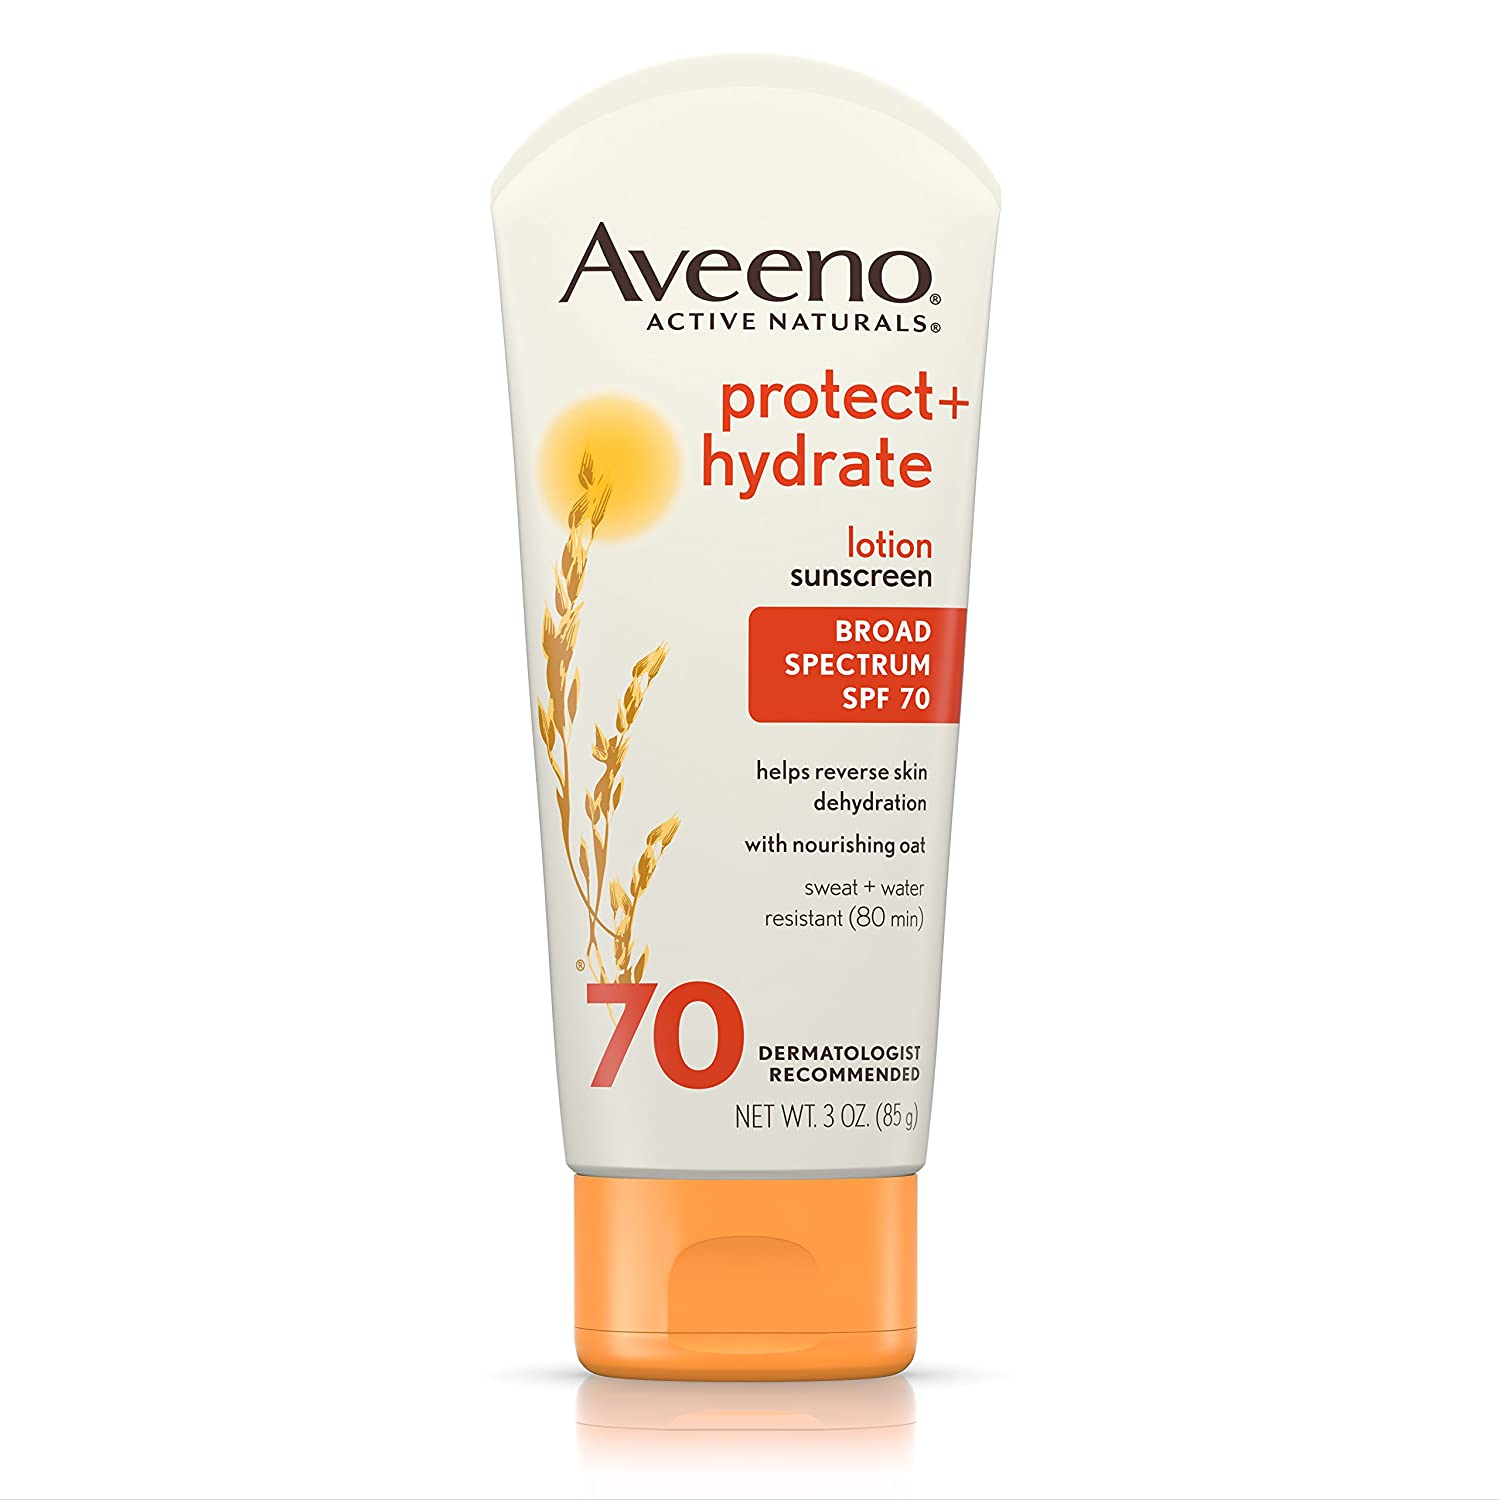 Aveeno Protect + Hydrate Moisturizing Sunscreen Lotion with Broad Spectrum SPF 70 & Antioxidant Oat, Oil-Free, Sweat- & Water-Resistant Sun Protection, Travel-Size, 3 oz AVO-15180